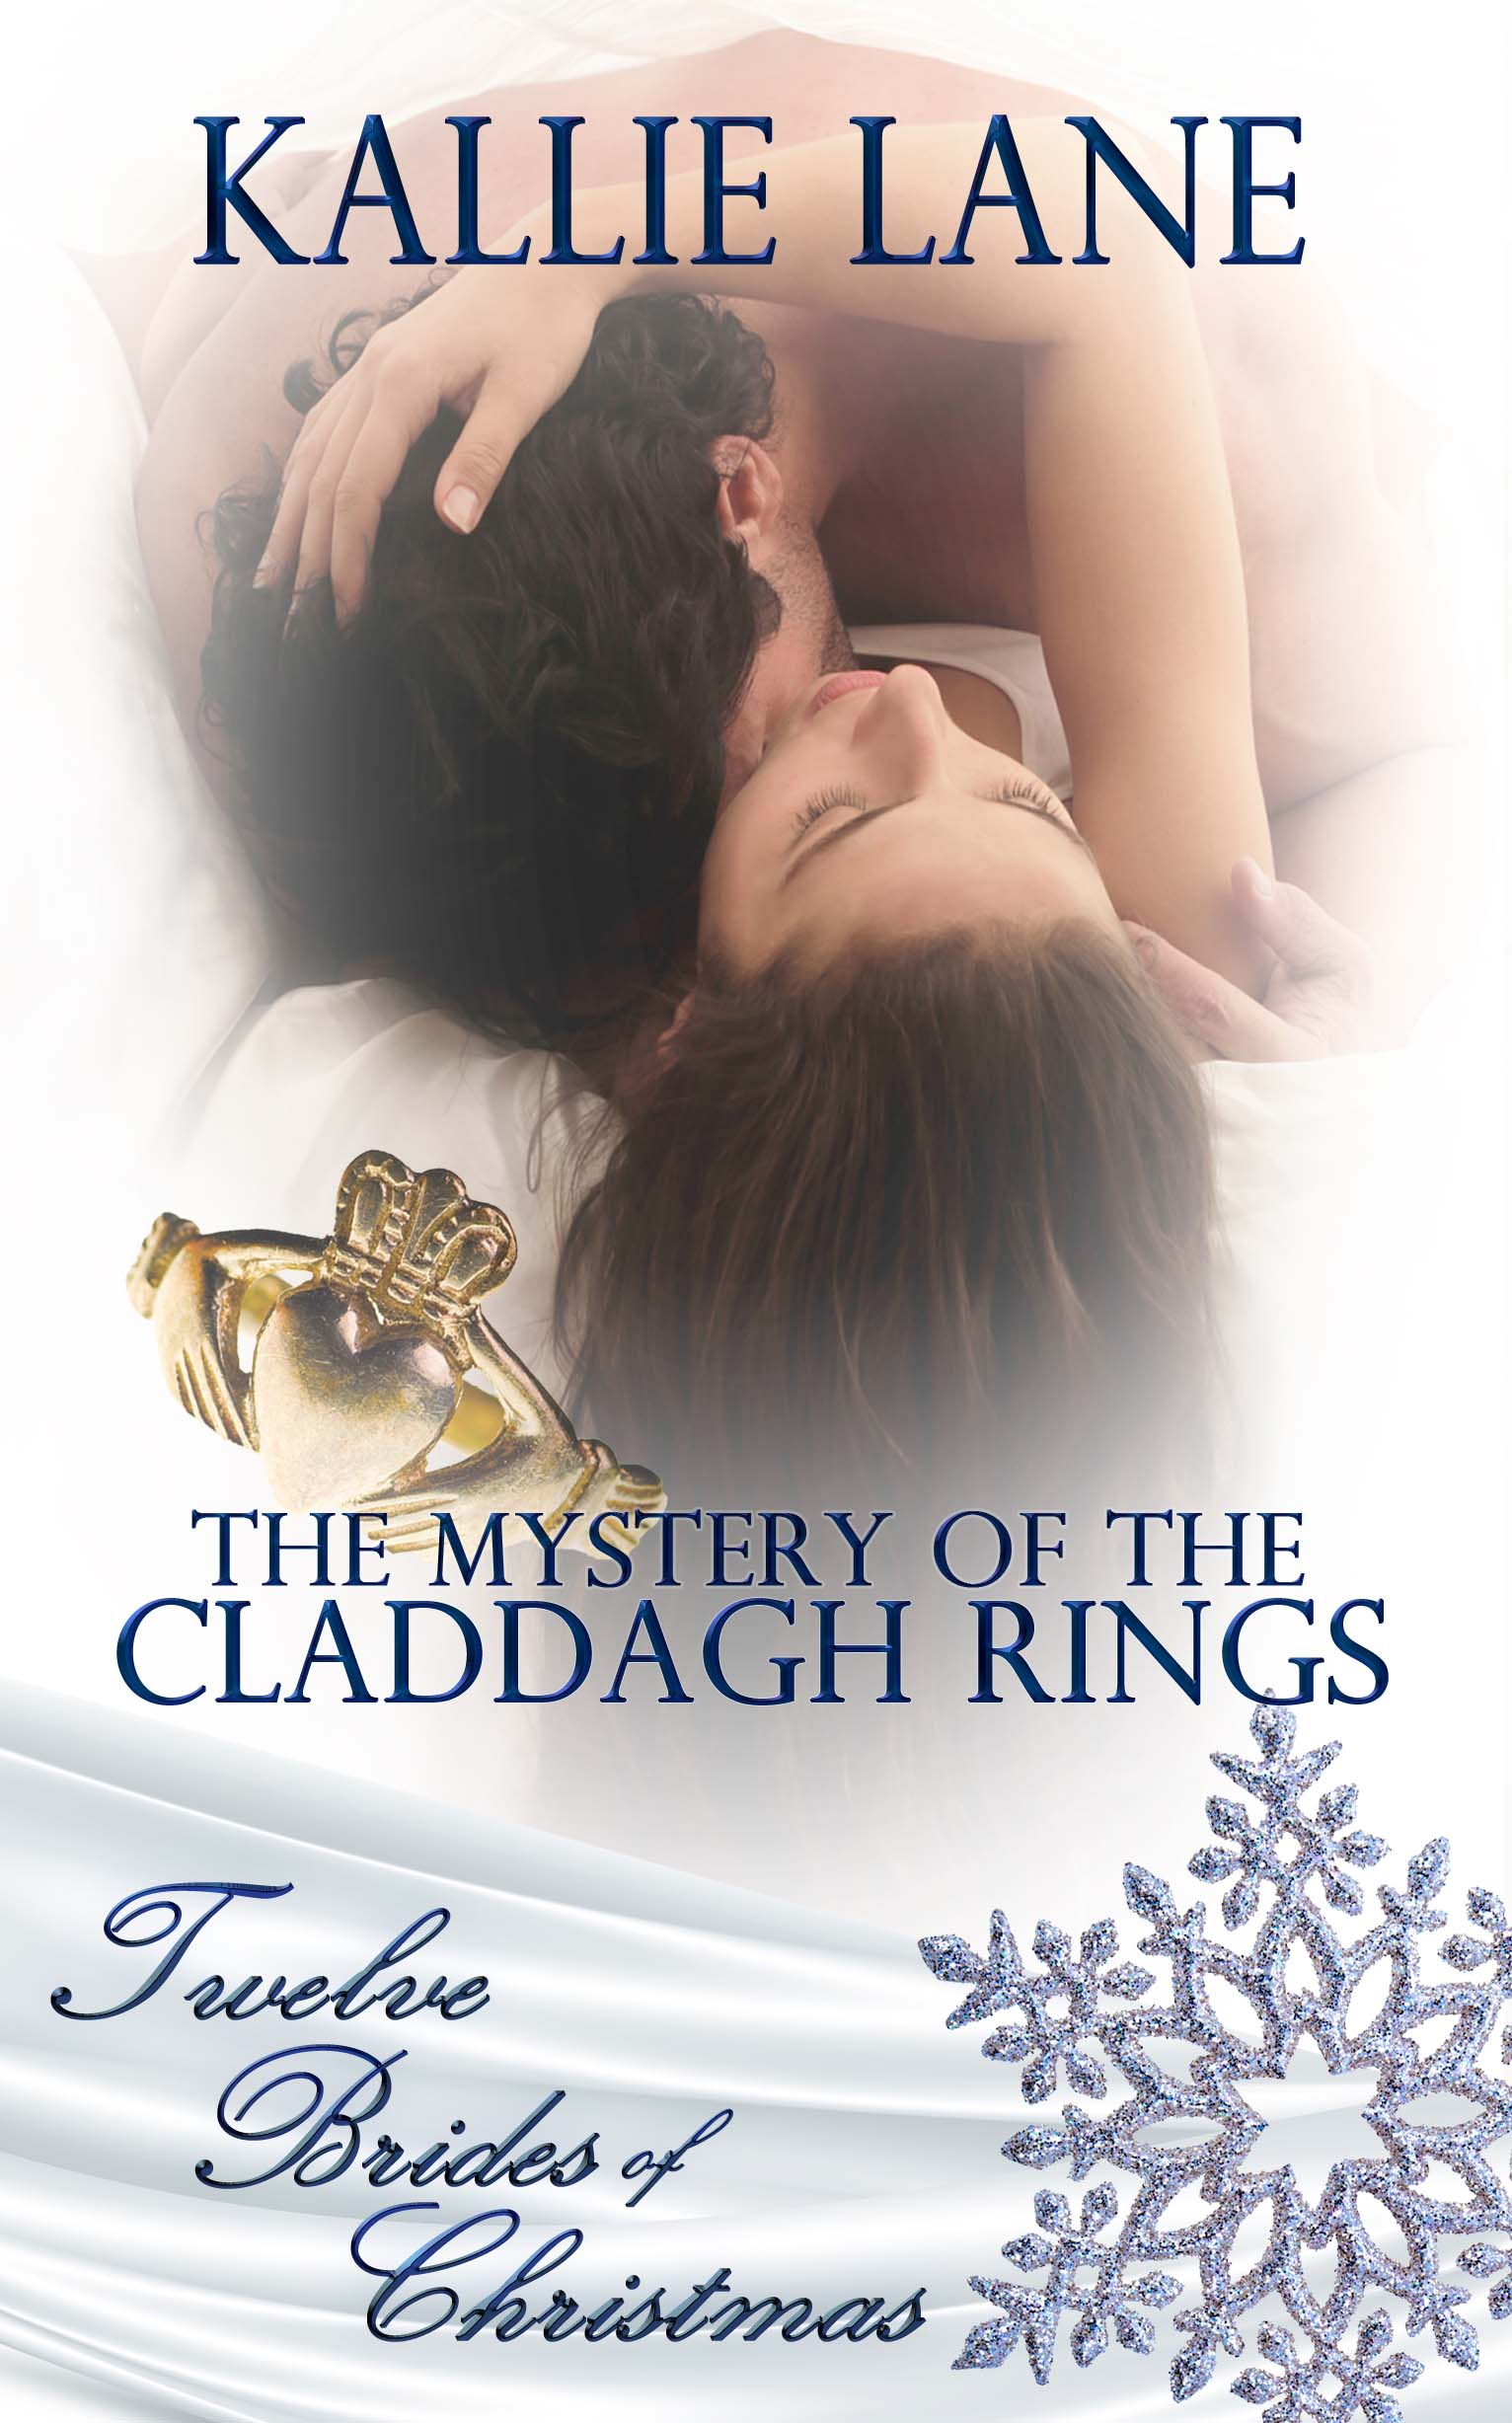 The Mystery of he Claddagh rings